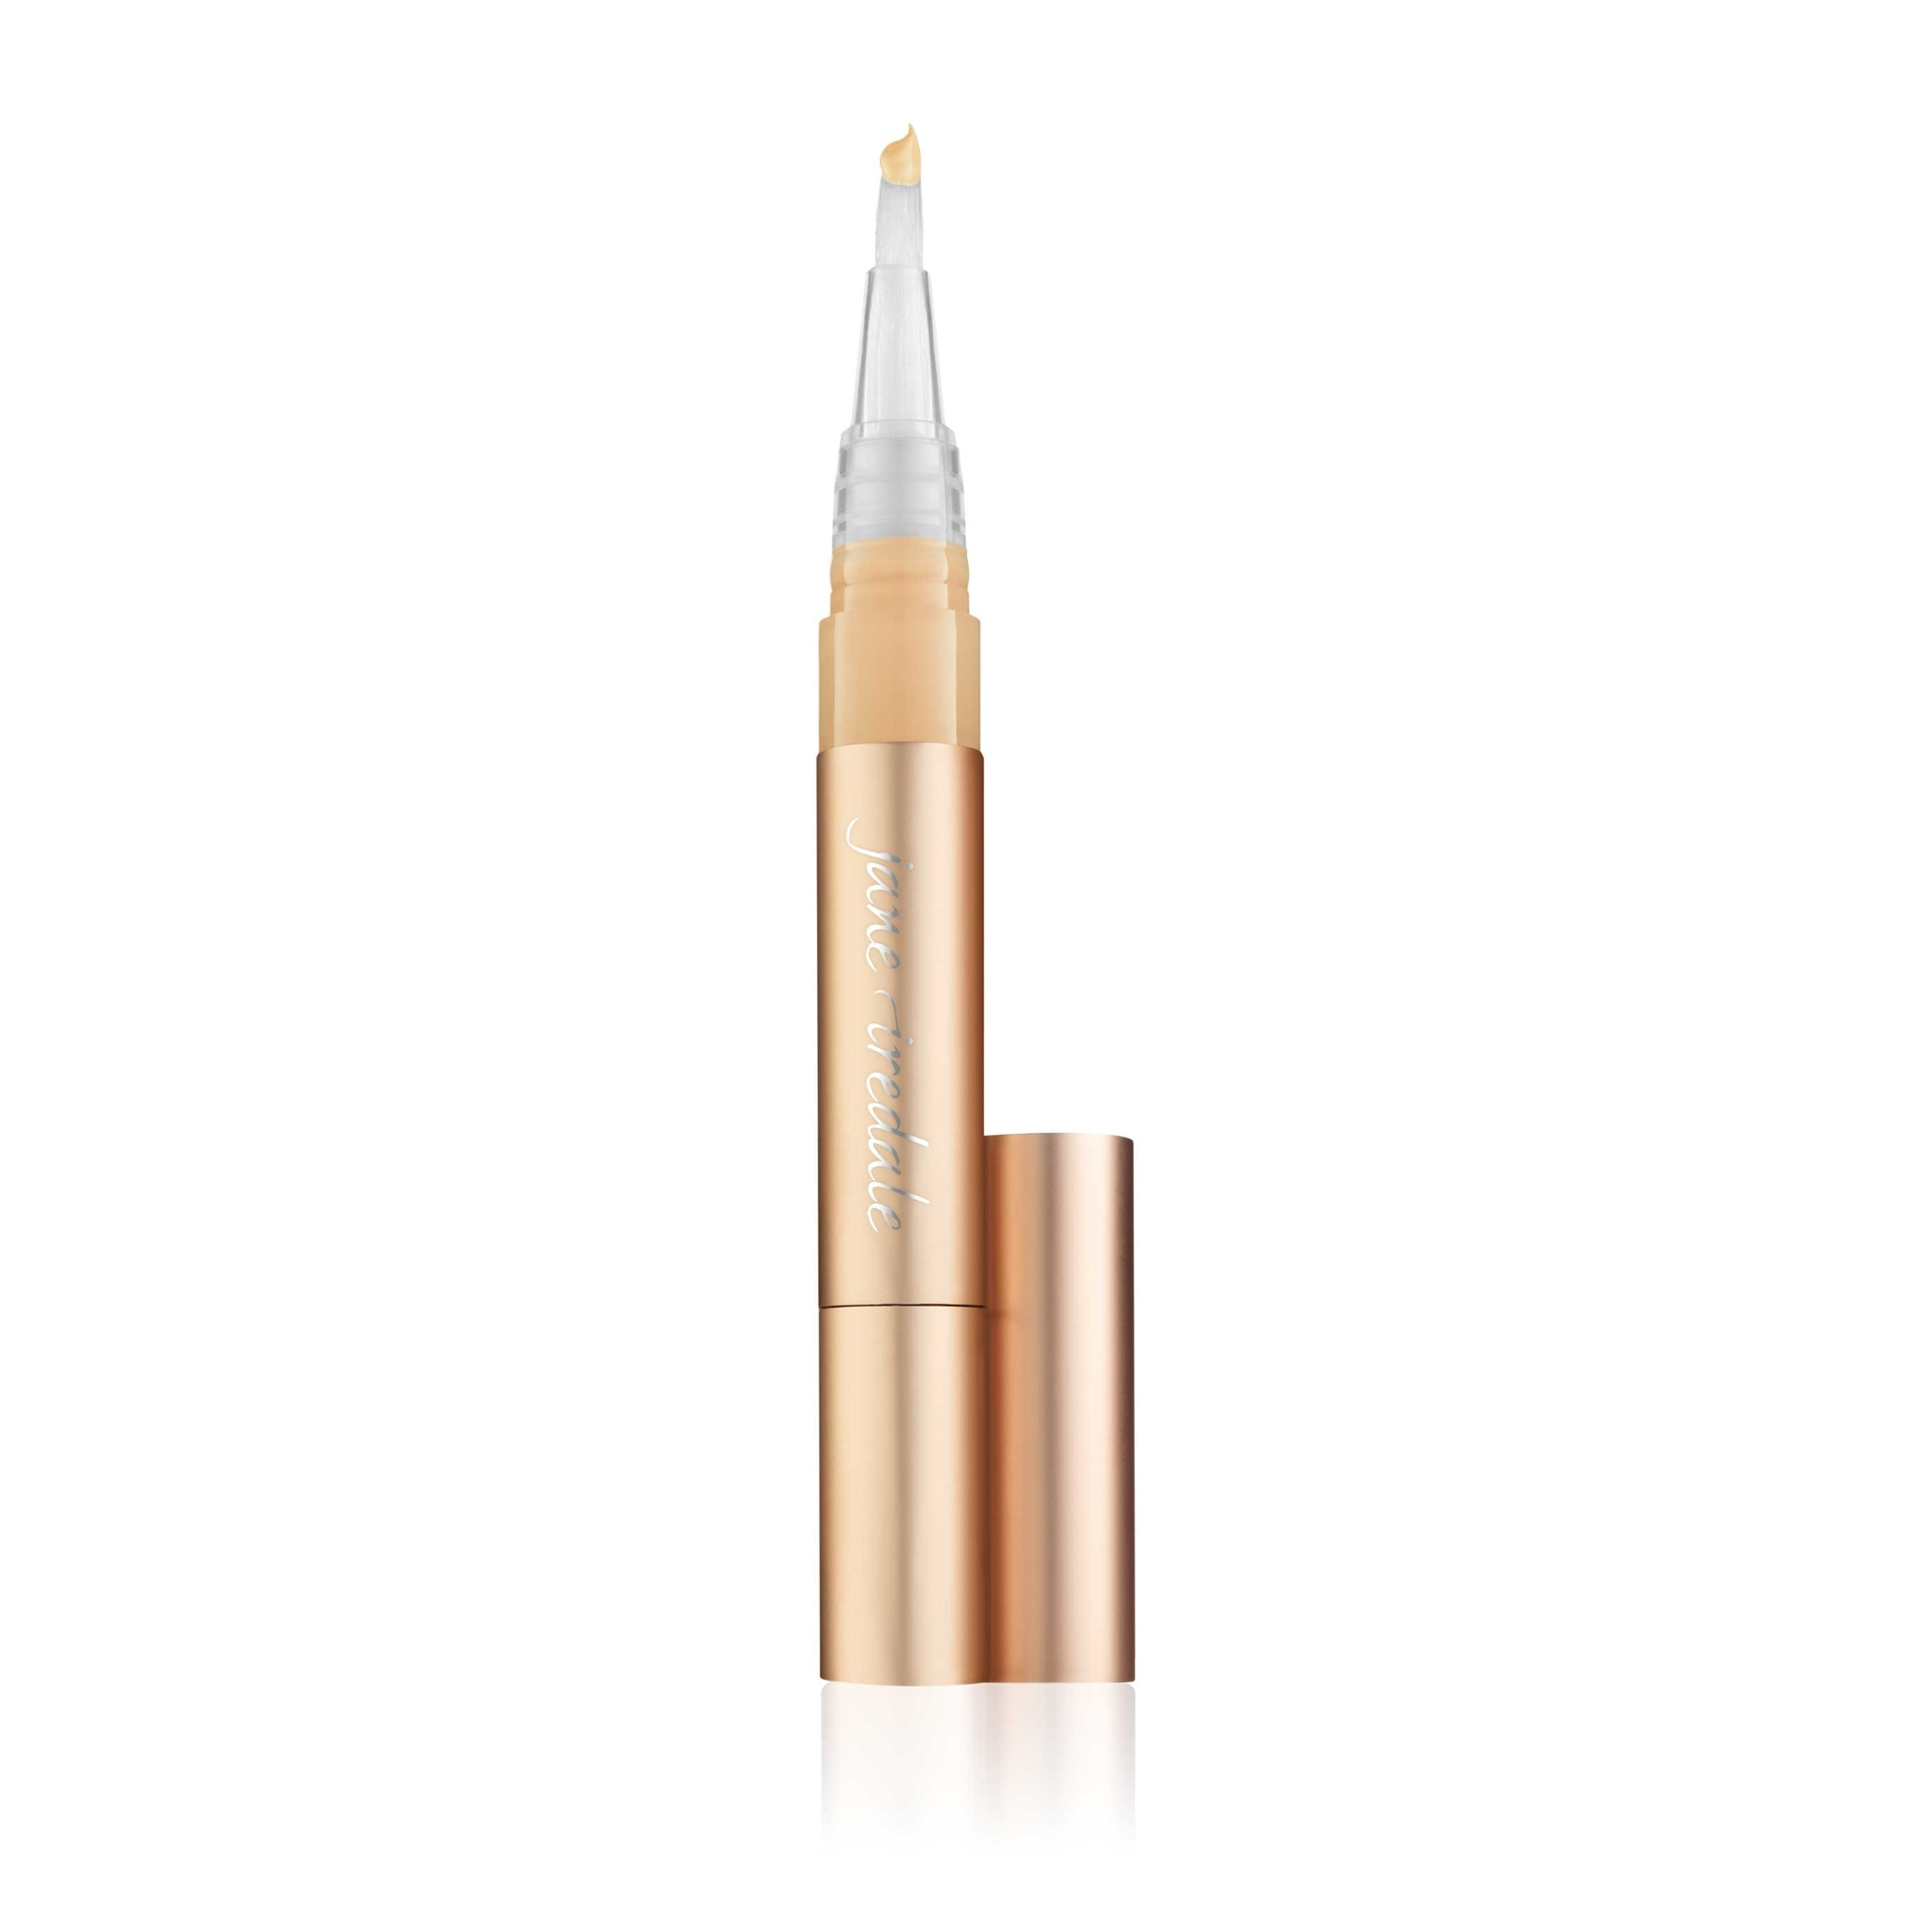 Jane Iredale ACTIVE LIGHT™ UNDER-EYE CONCEALER